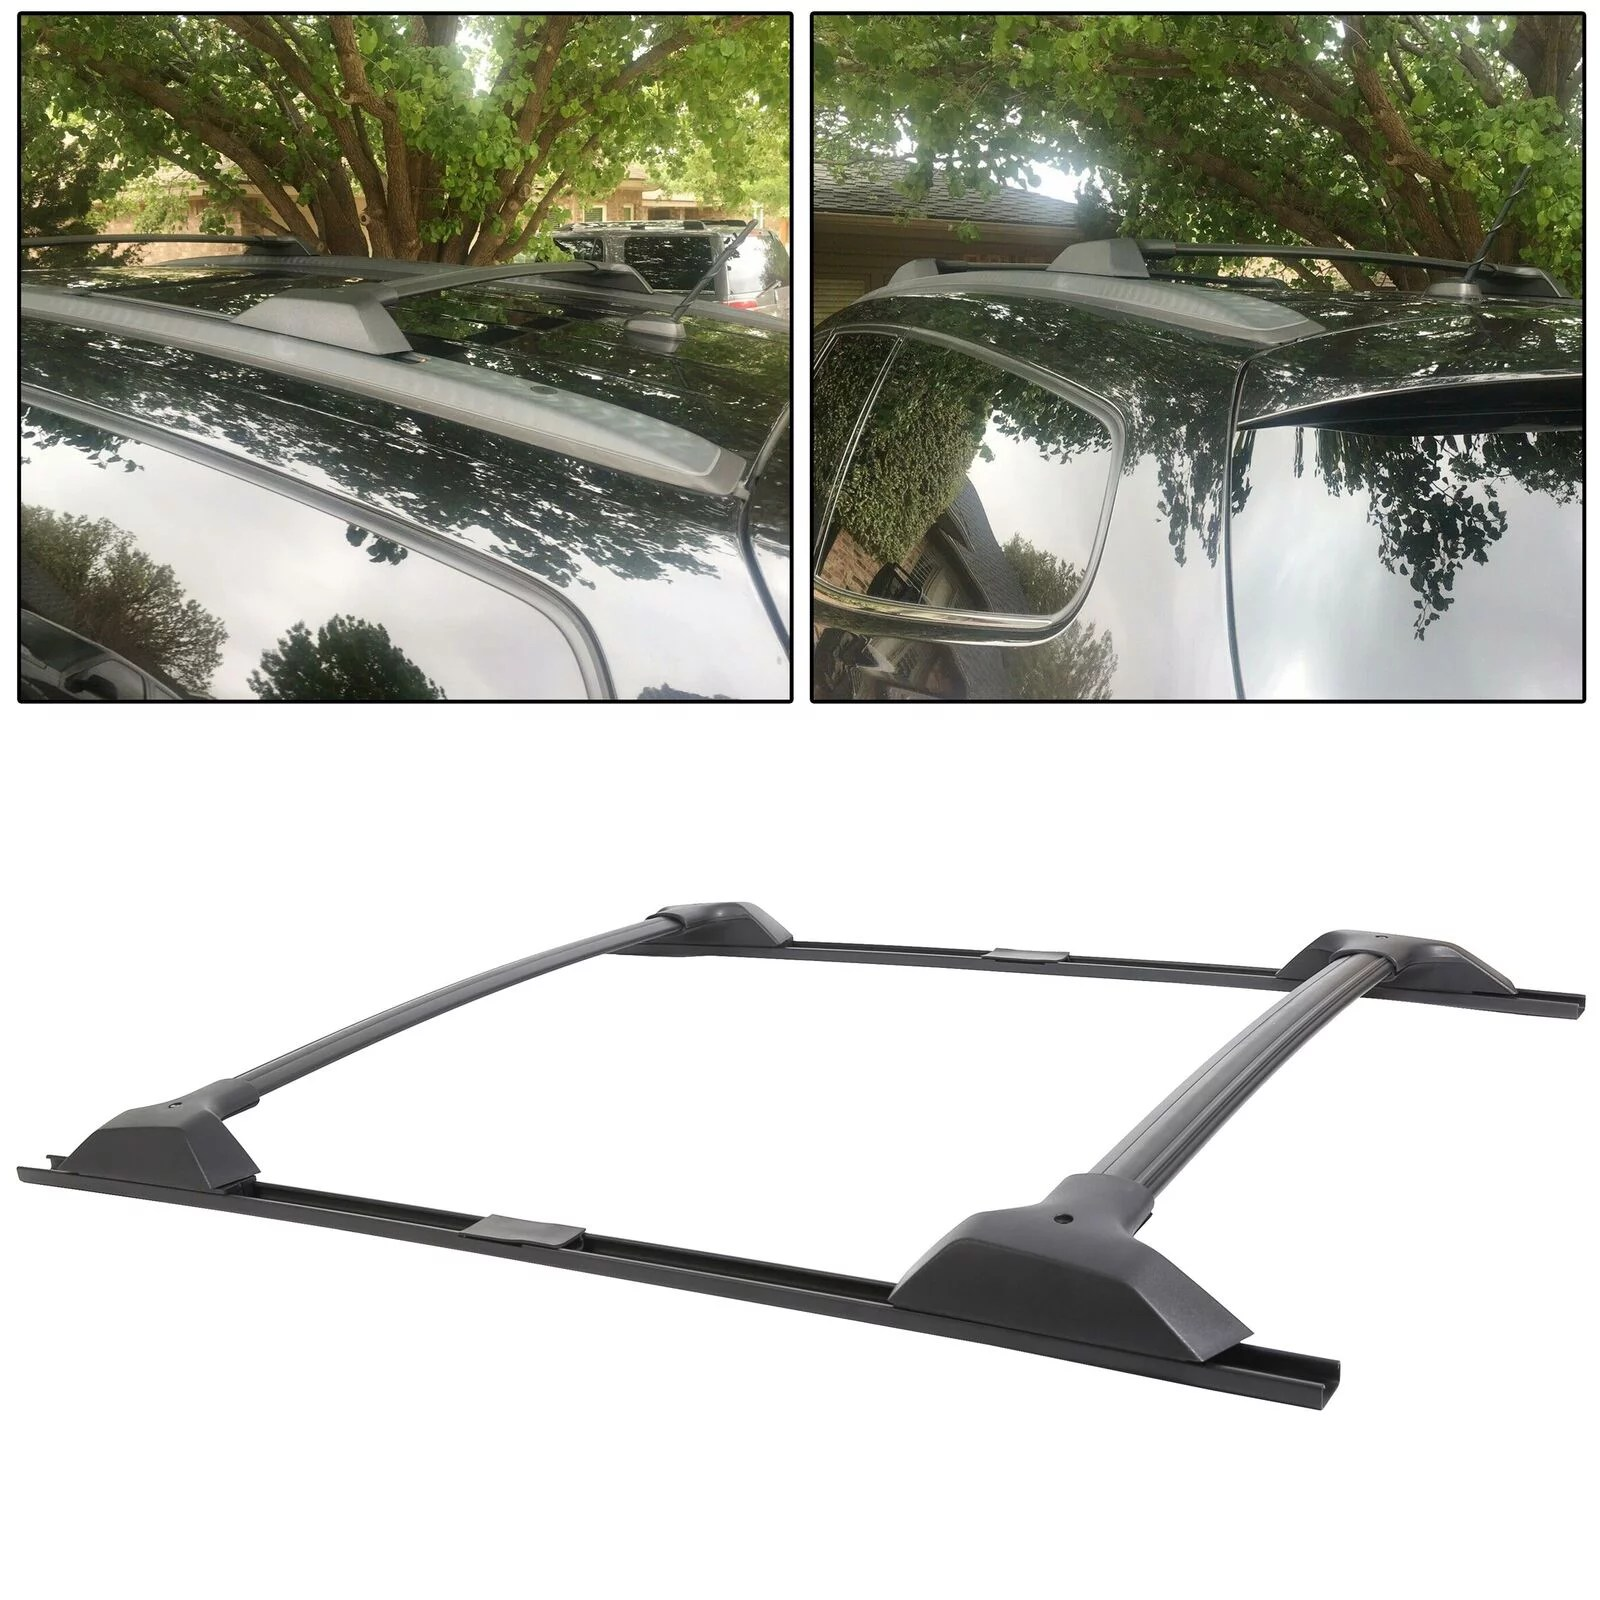 black roof rack cross bar with side rail package for 09 17 chevrolet traverse